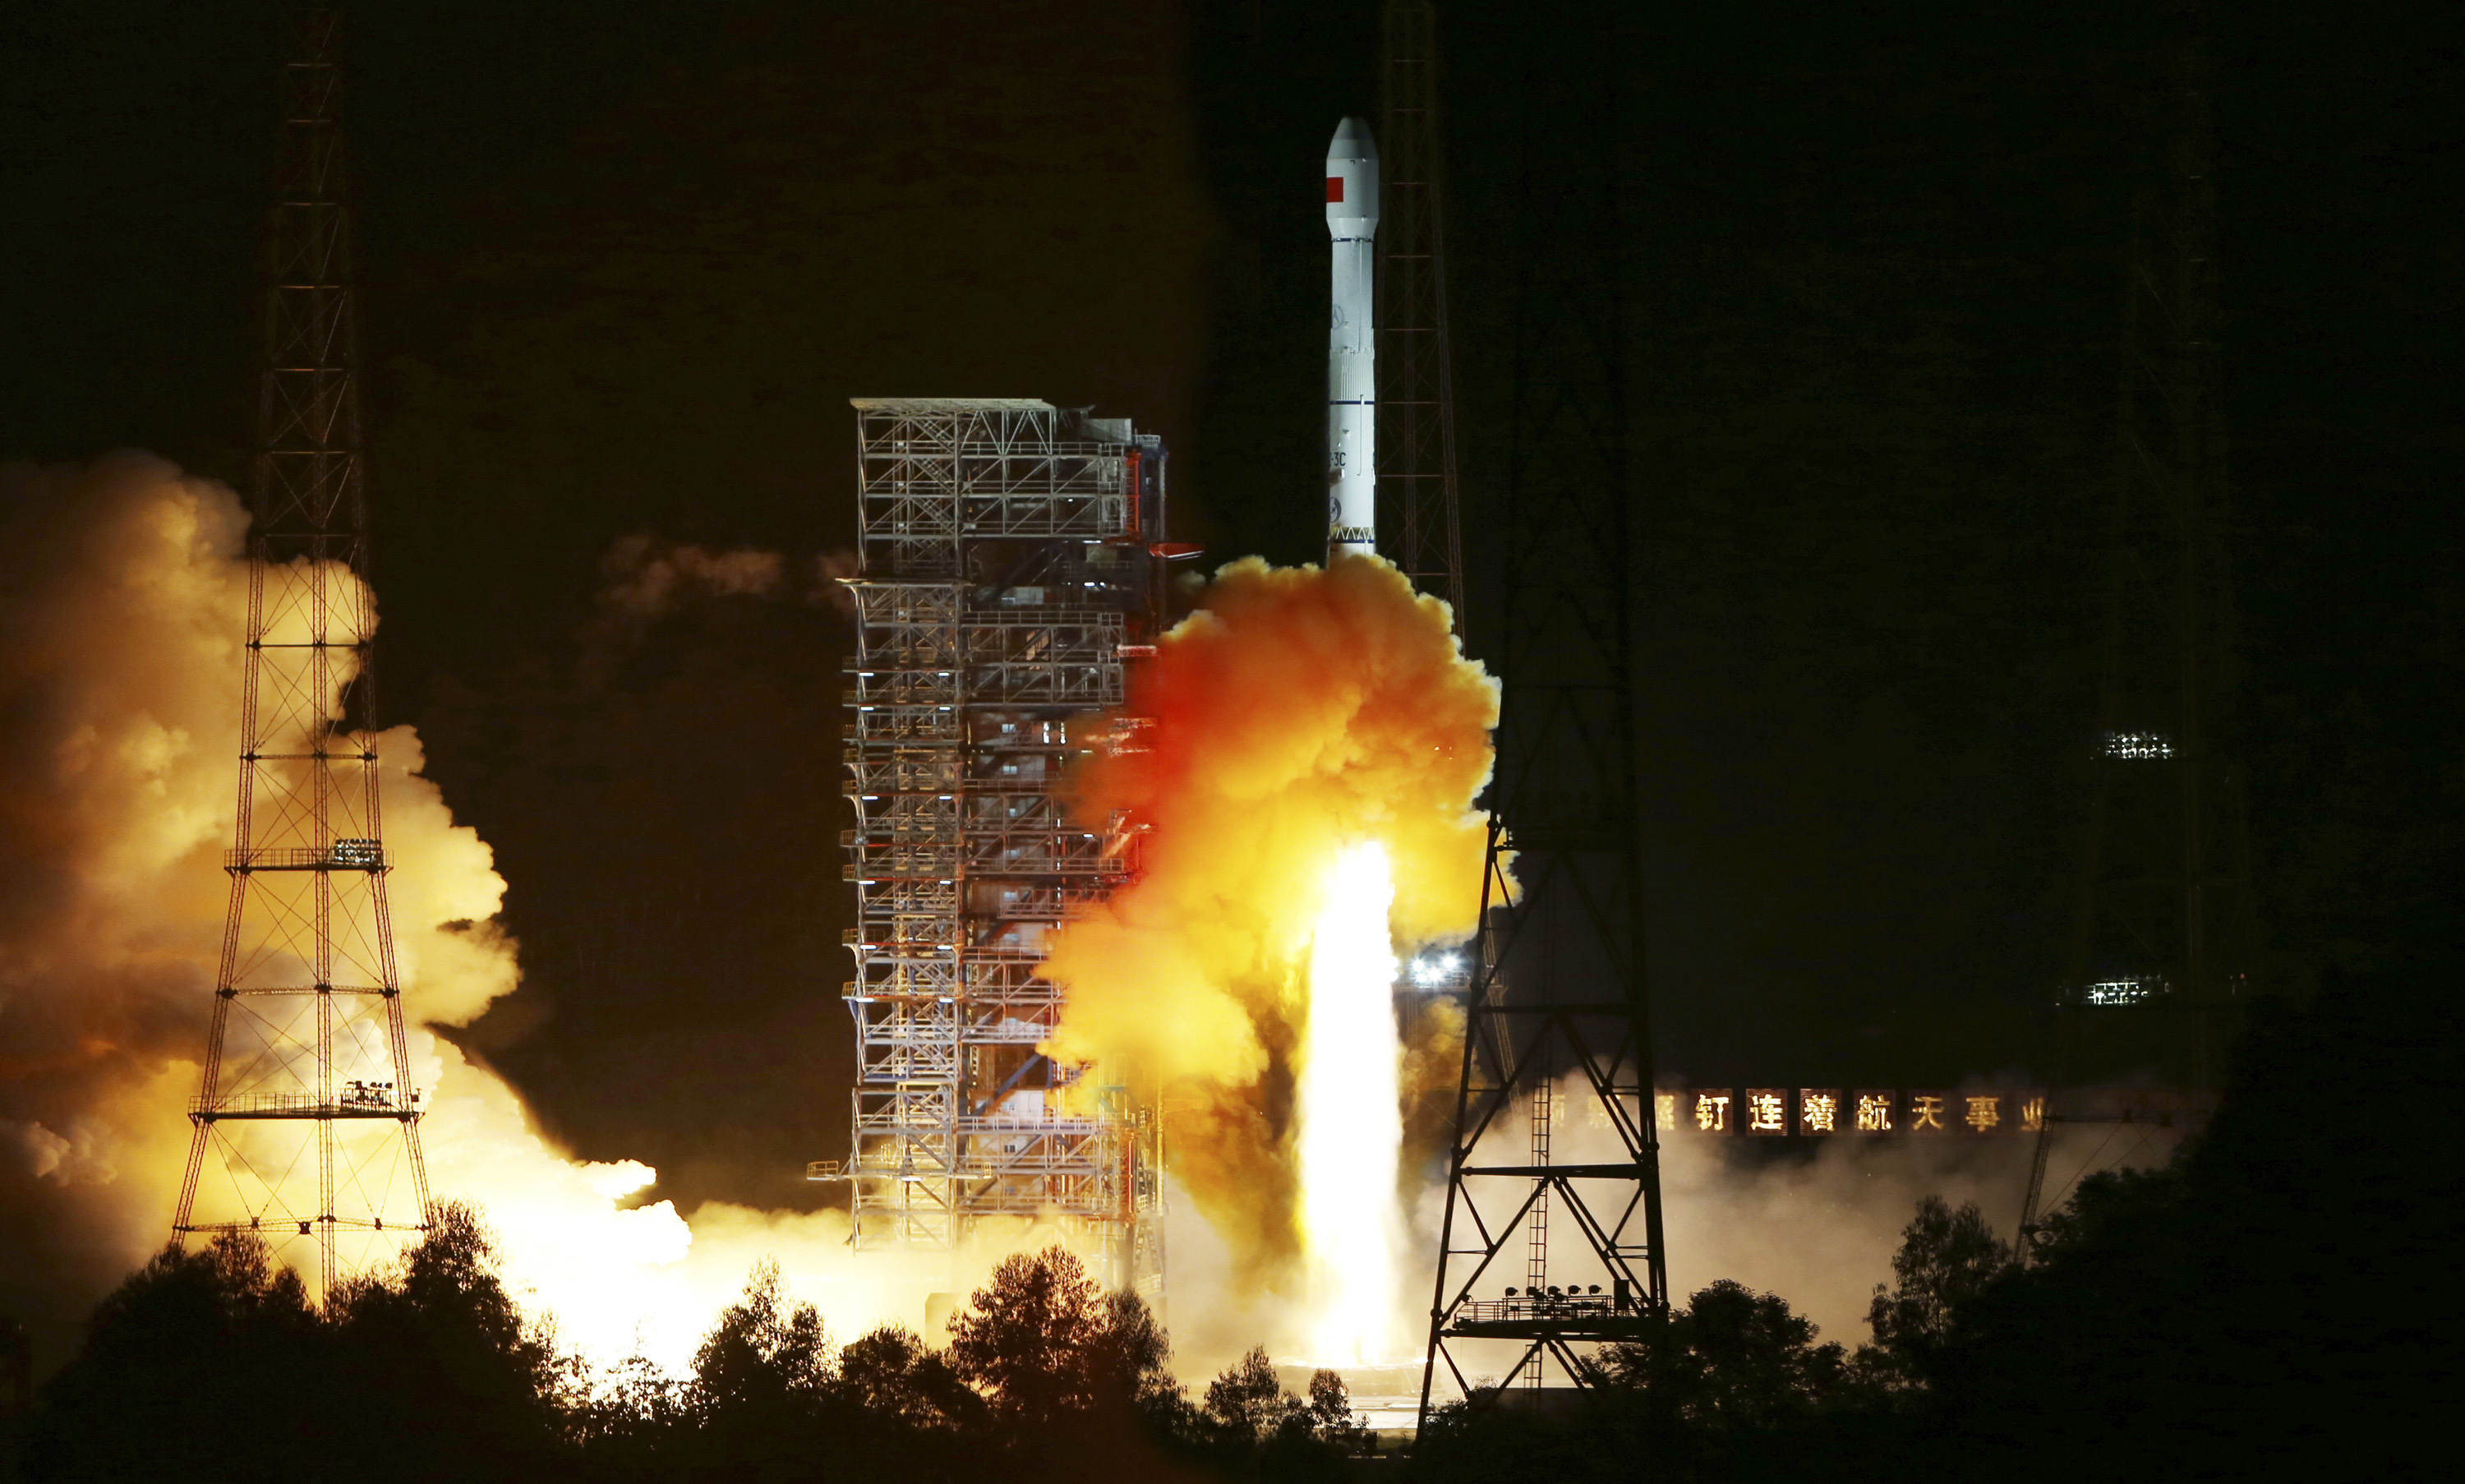 Long March 3C, carrying an experimental spacecraft, lifts off from the launch pad at the Xichang Satellite Launch Center, Sichuan province, October 24, 2014. The experimental spacecraft launched early on Friday morning is part of a test in the hope of leading to future return missions to the moon, China's state media reported. REUTERS/Stringer (CHINA - Tags: ENVIRONMENT SCIENCE TECHNOLOGY TPX IMAGES OF THE DAY) CHINA OUT. NO COMMERCIAL OR EDITORIAL SALES IN CHINA - RTR4BEZX